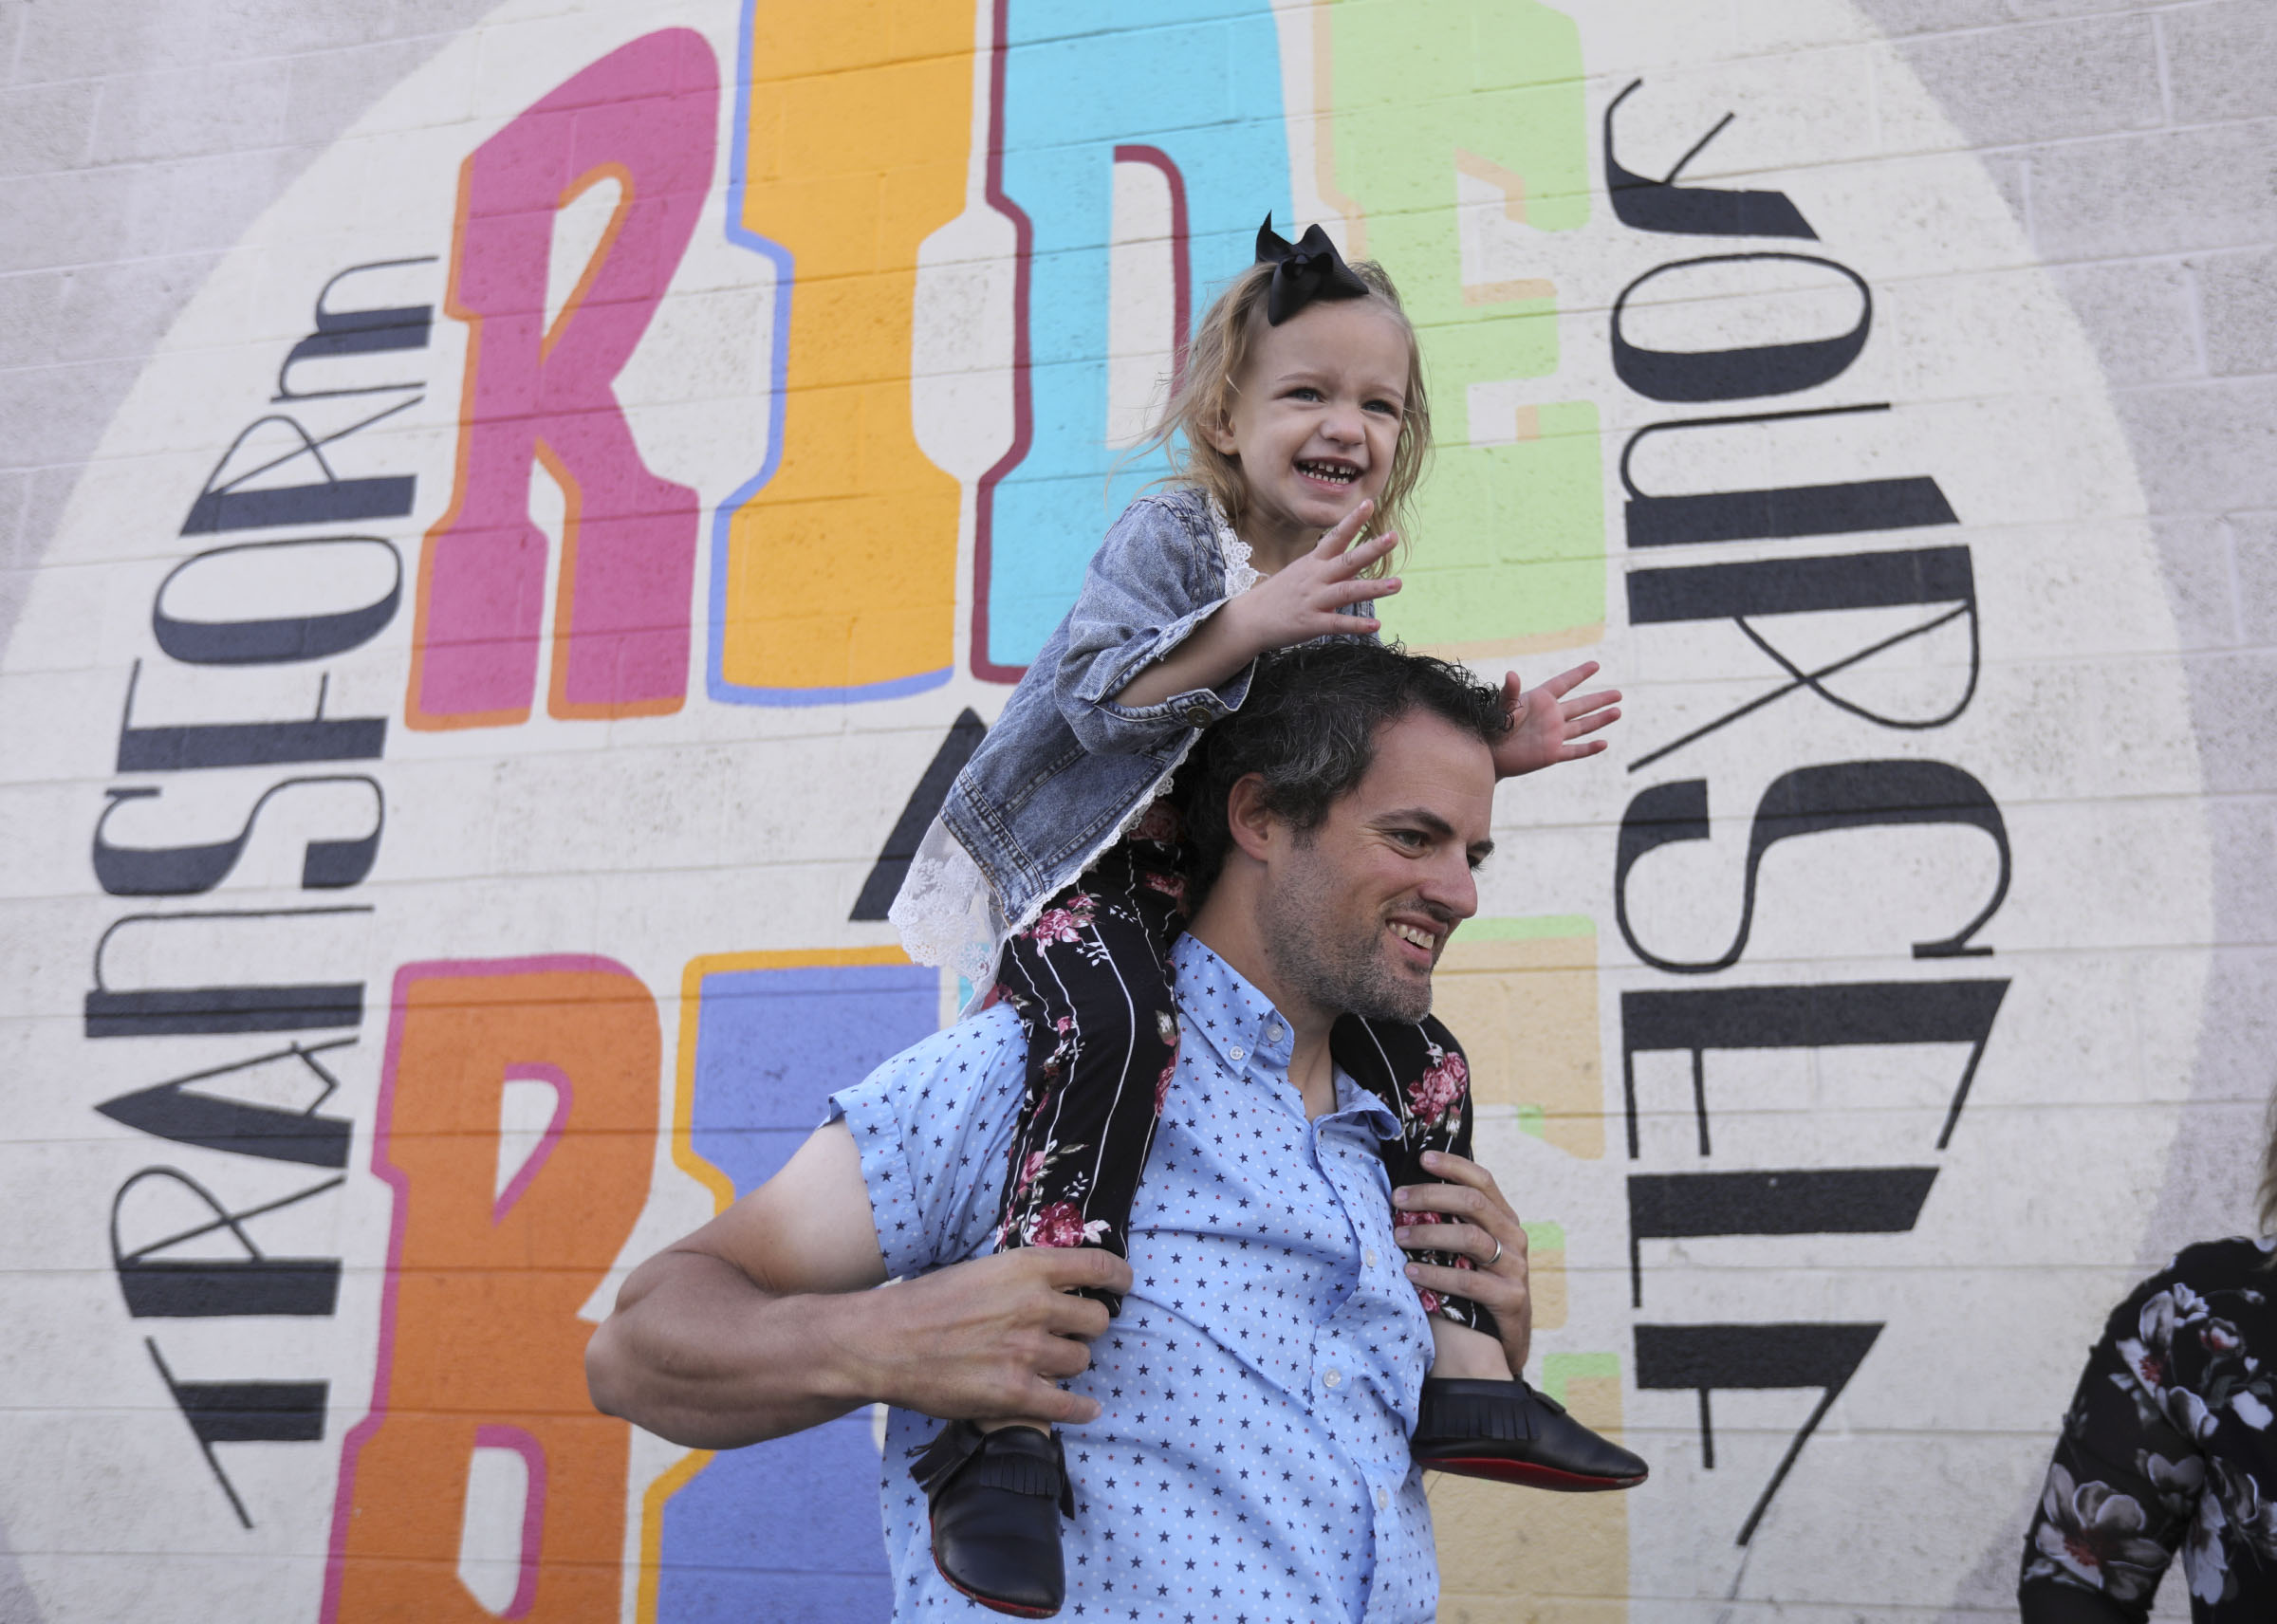 Mike West holds daughter Cozette West on his shoulders during a press conference about how biking has become their family's primary mode of transportation outside of the Bicycle Collective in Salt Lake City on Wednesday, Oct. 14, 2020. Data shows there has been an increase in walking and biking during the COVID-19 pandemic.